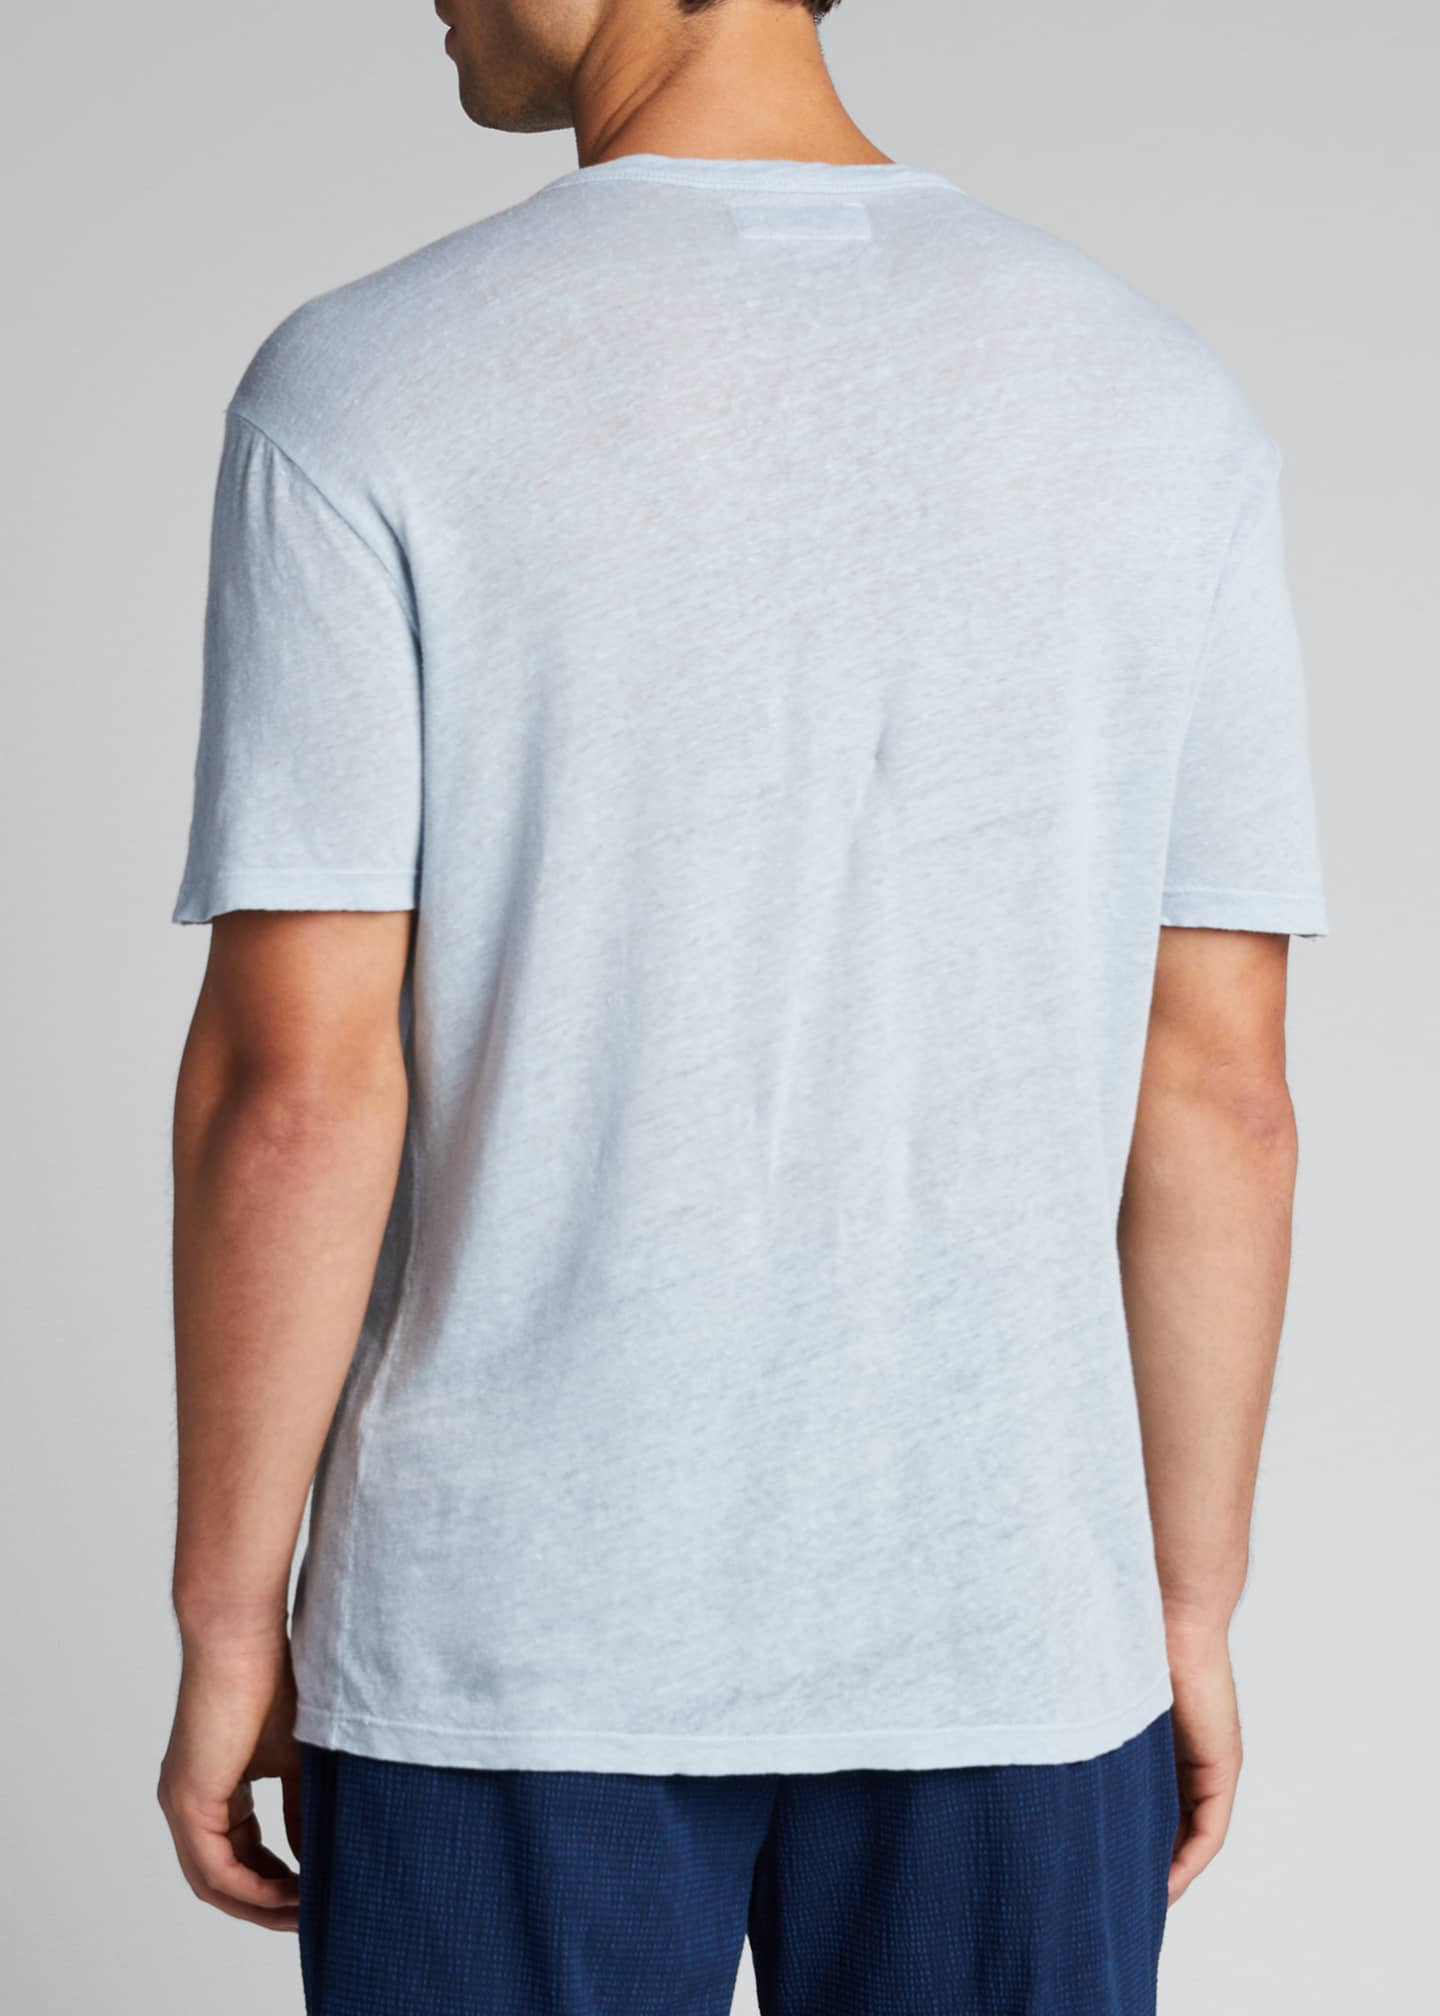 Image 2 of 5: Men's Garment-Dyed Linen Crewneck Tee